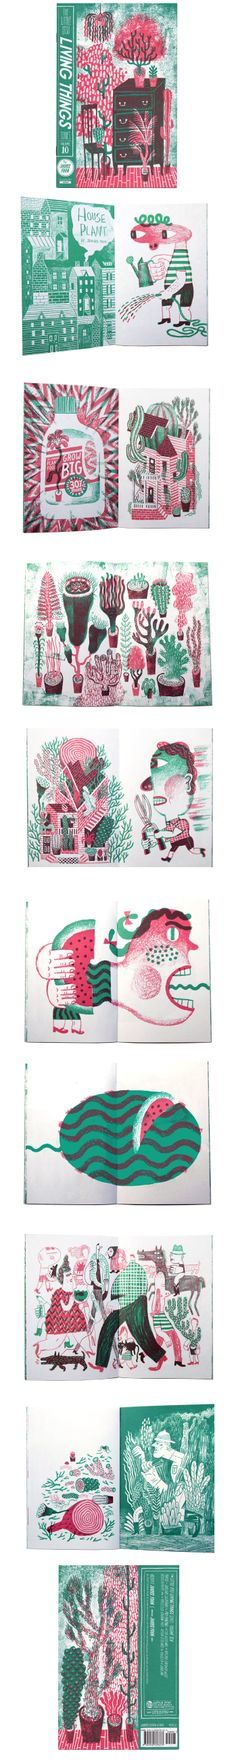 JooHee Yoon colors out of two with translucent inks) Up Book, Book Art, Identity Design, Dm Poster, Magazin Design, Illustrations And Posters, Grafik Design, Children's Book Illustration, Graphic Design Inspiration